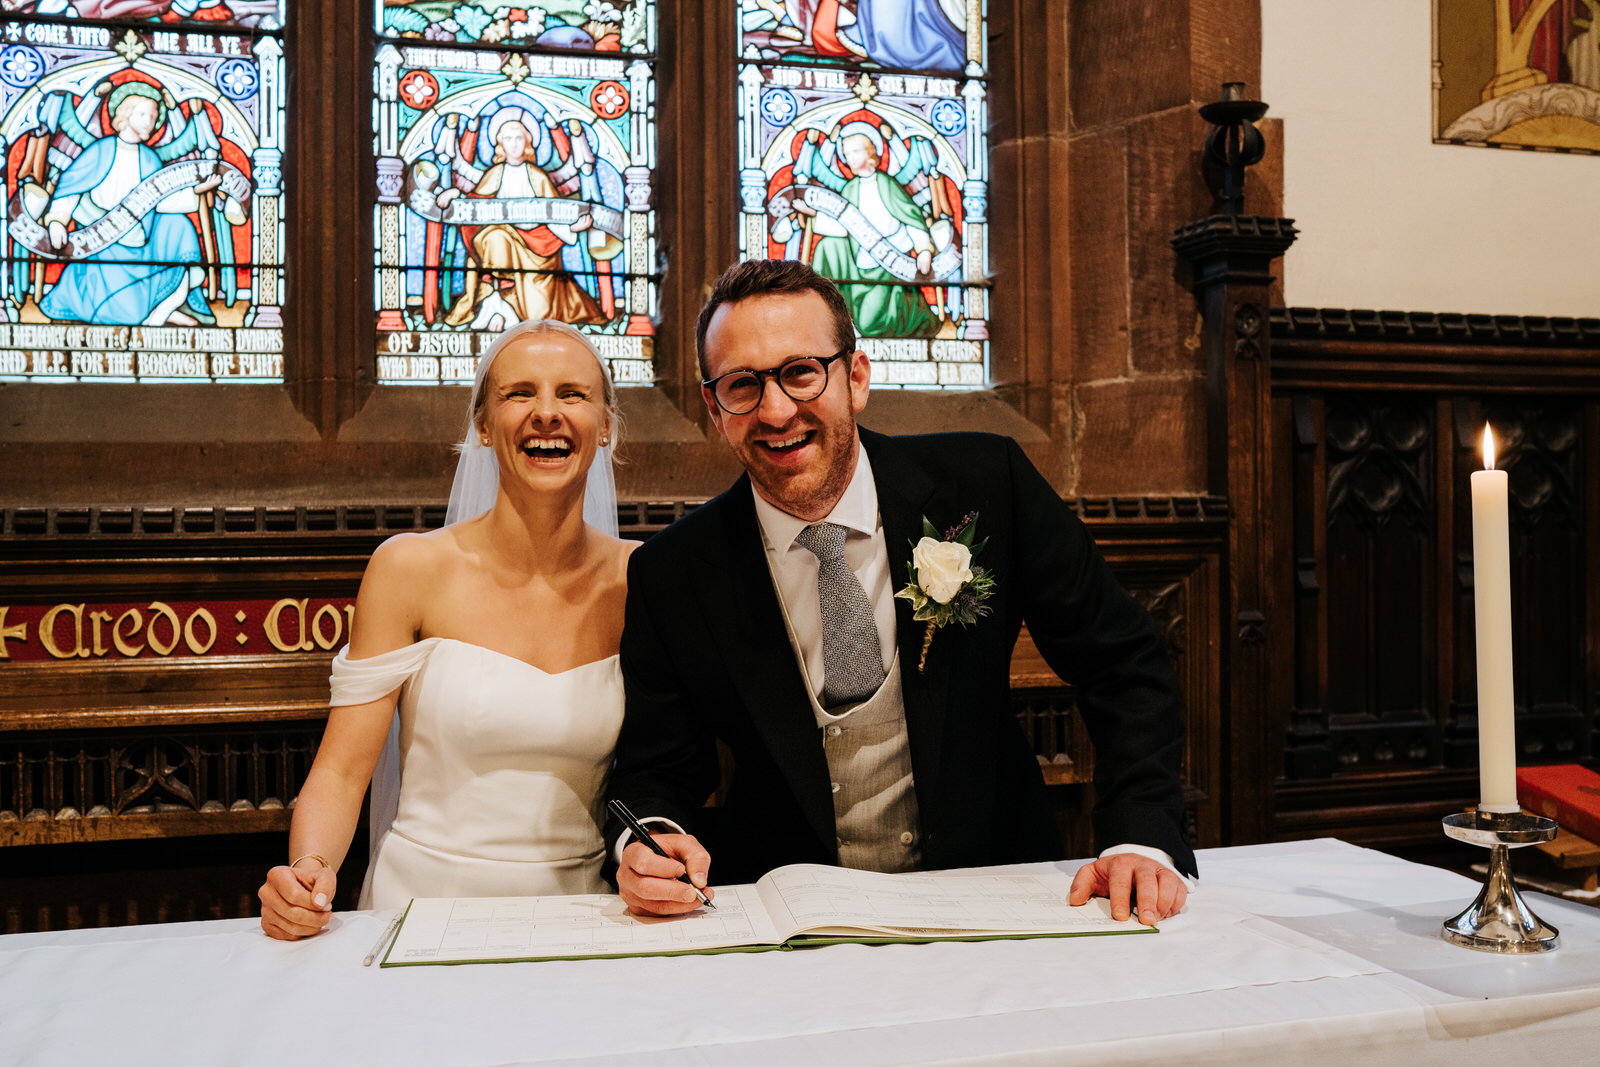 Bride and groom smile at camera while taking staged photograph of registry signing